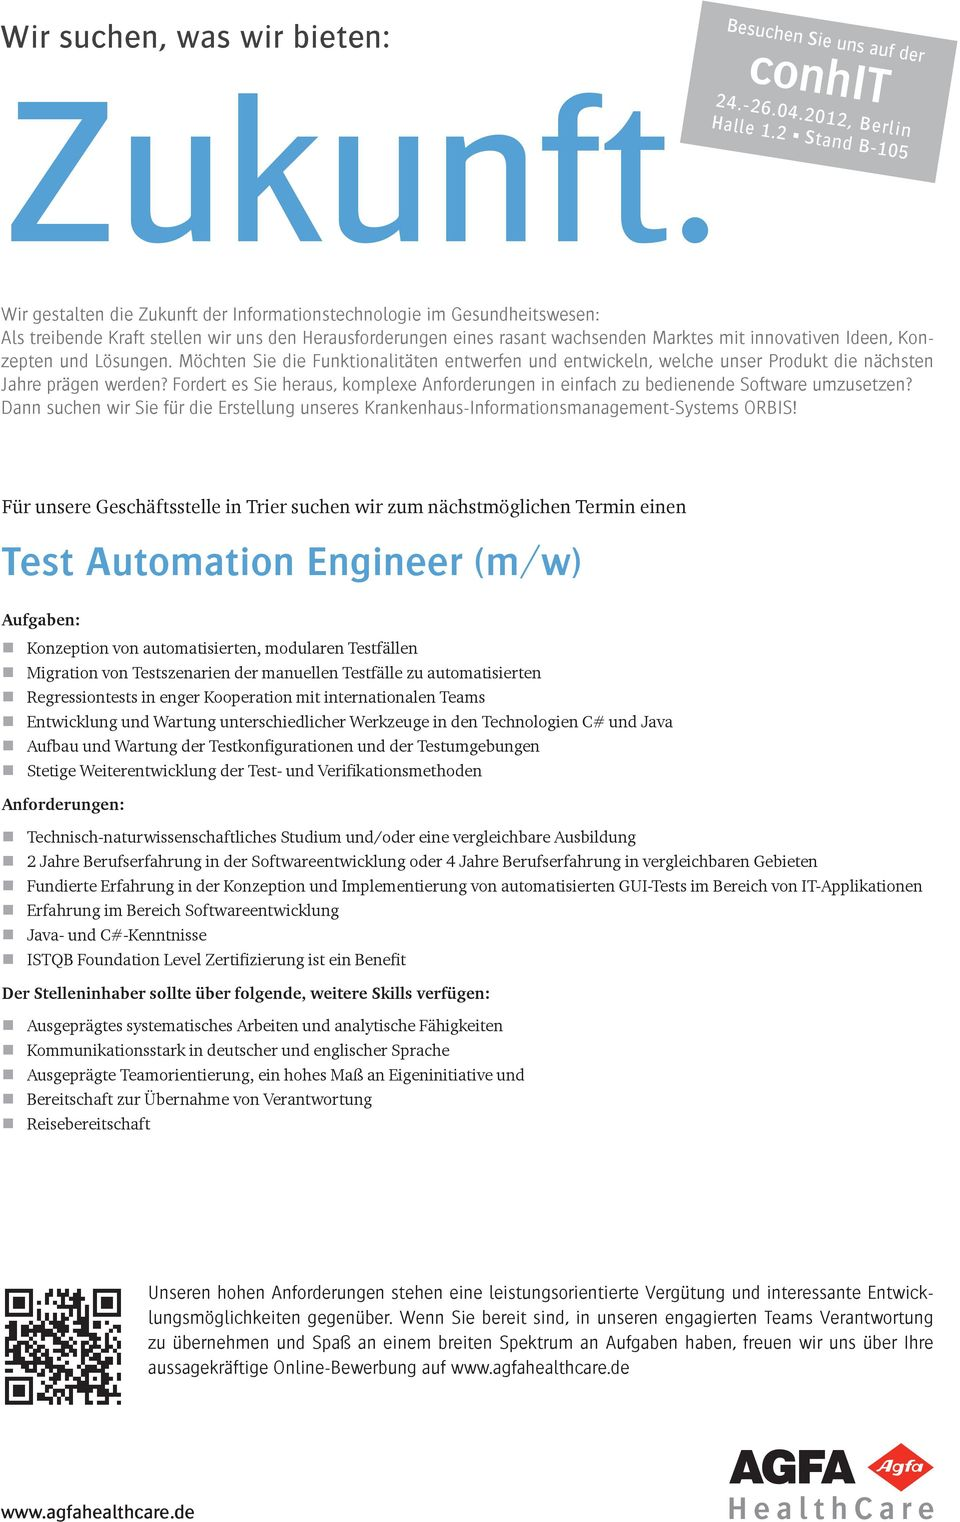 manuellen Testfälle zu automatisierten Regressiontests in enger Kooperation mit internationalen Teams Entwicklung und Wartung unterschiedlicher Werkzeuge in den Technologien C# und Java Aufbau und